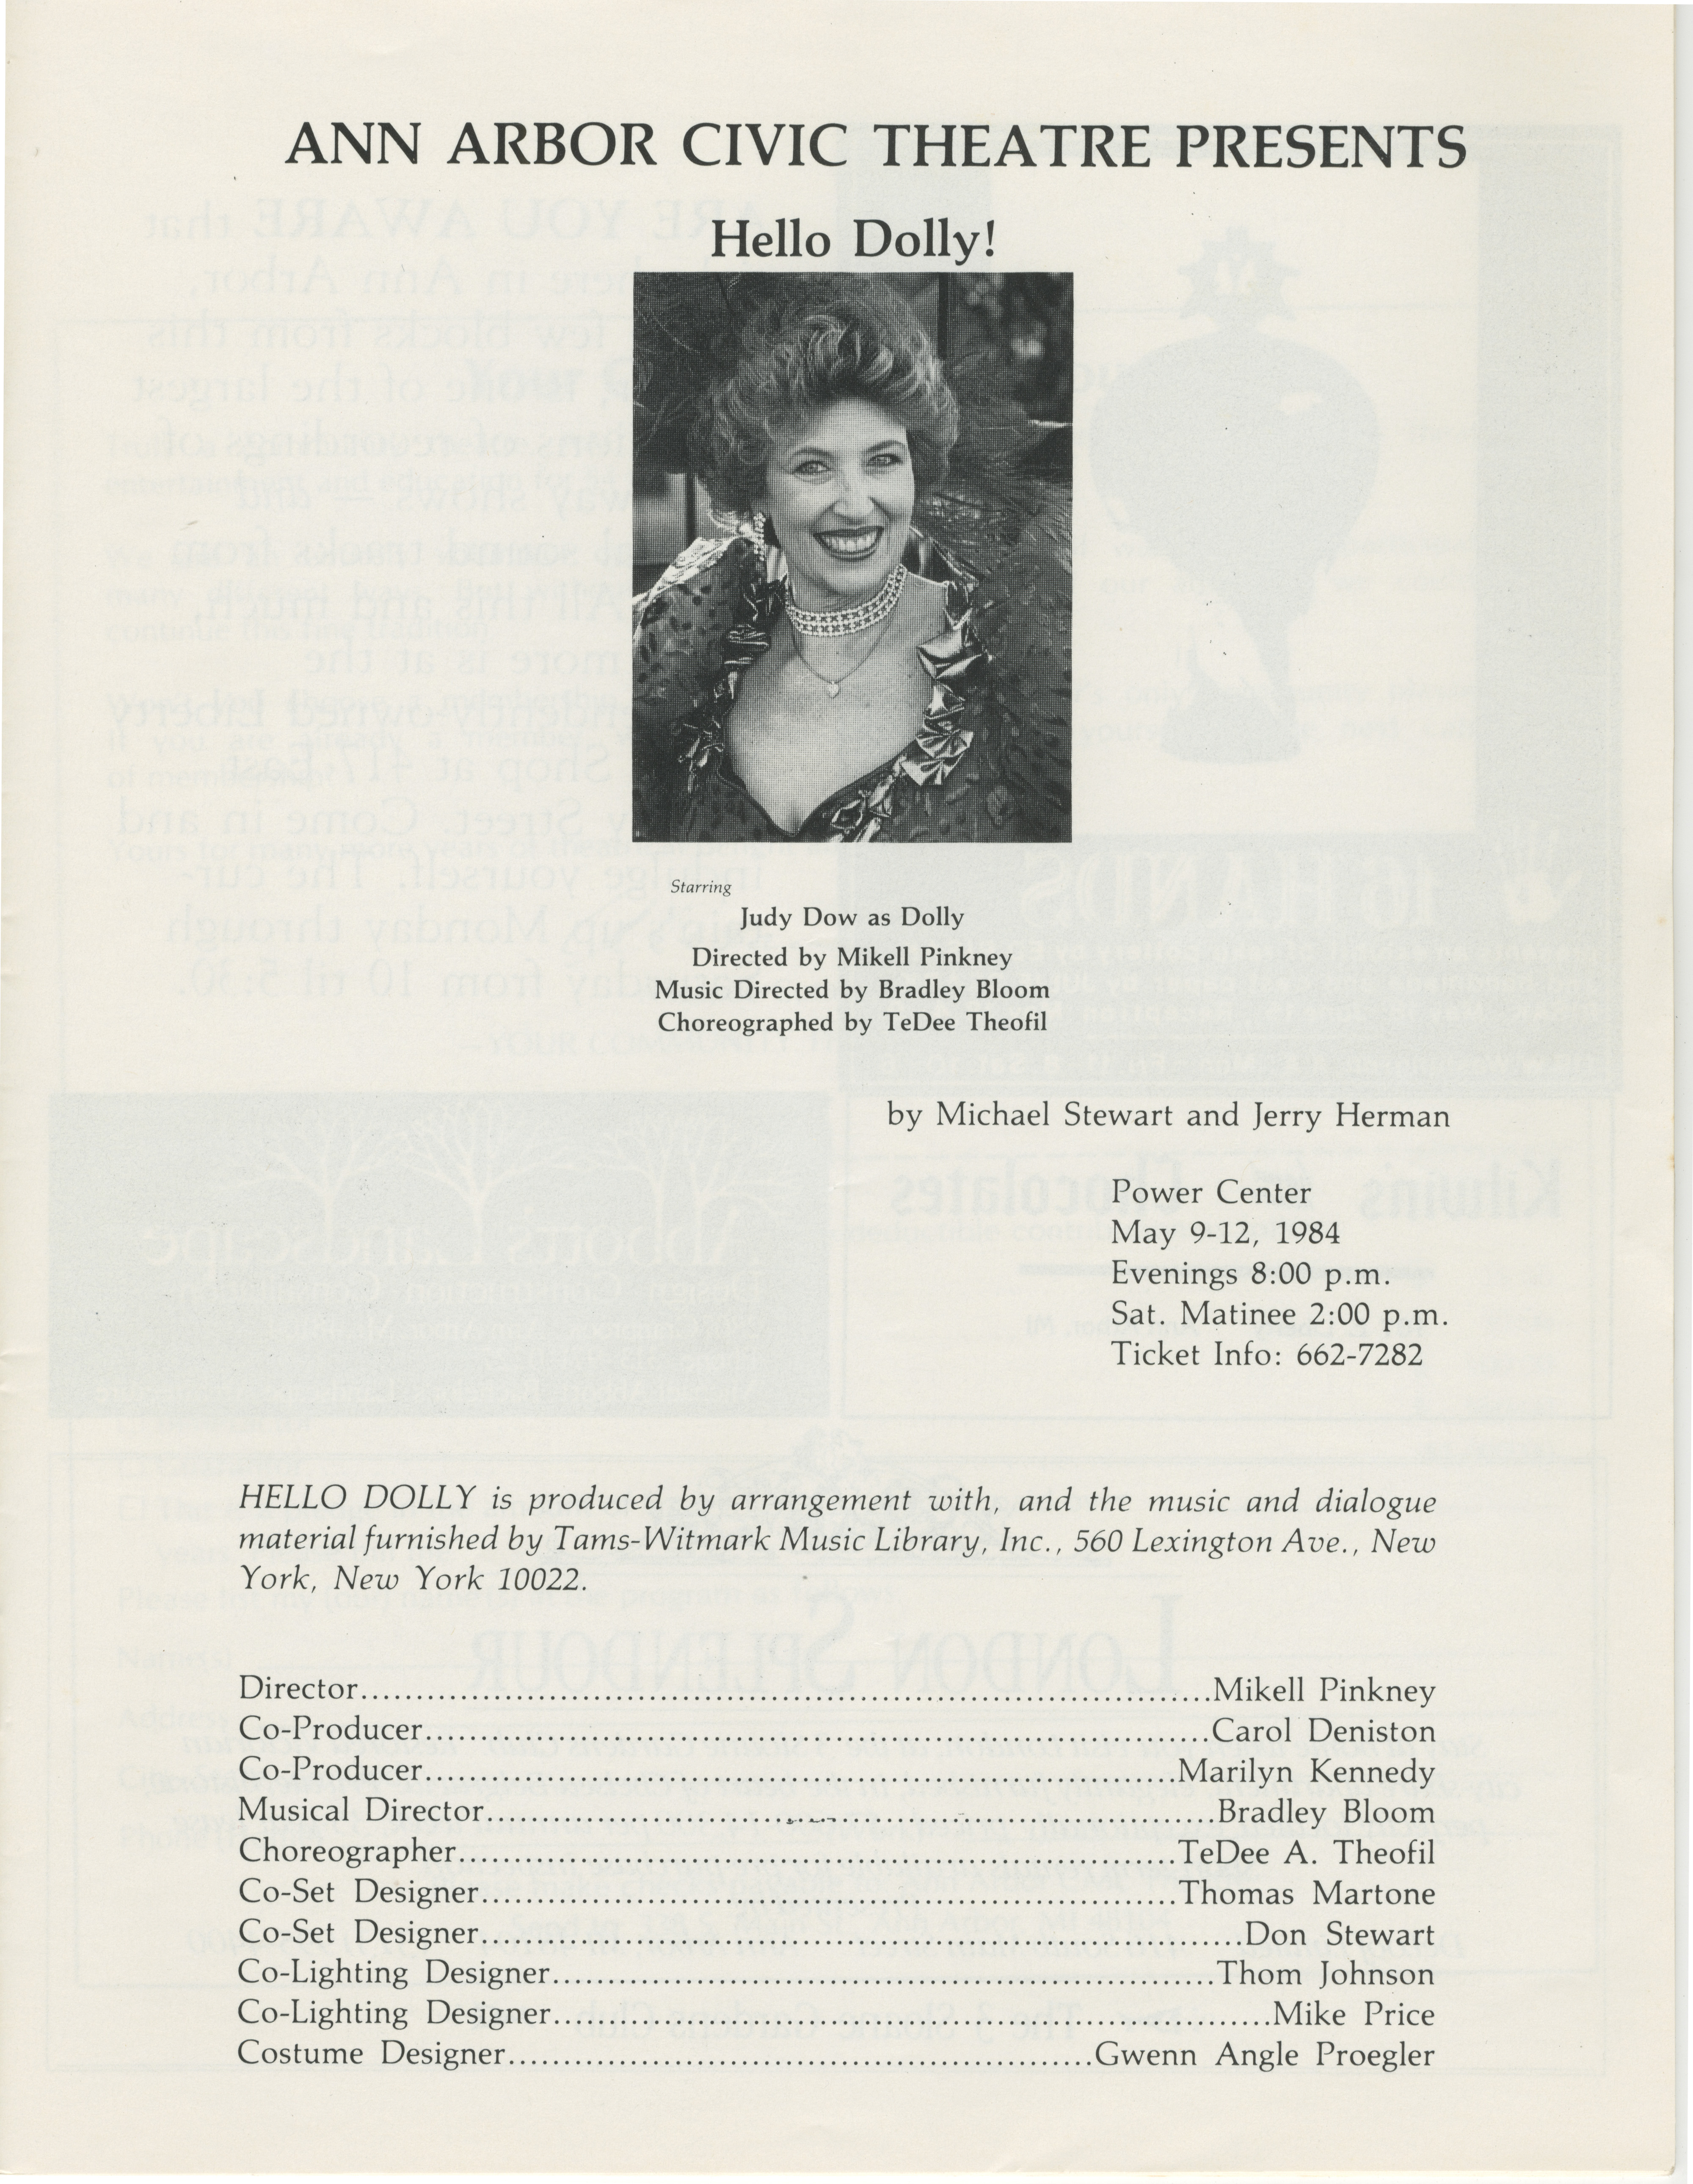 Ann Arbor Civic Theatre Program: Hello Dolly!, May 09, 1984 image